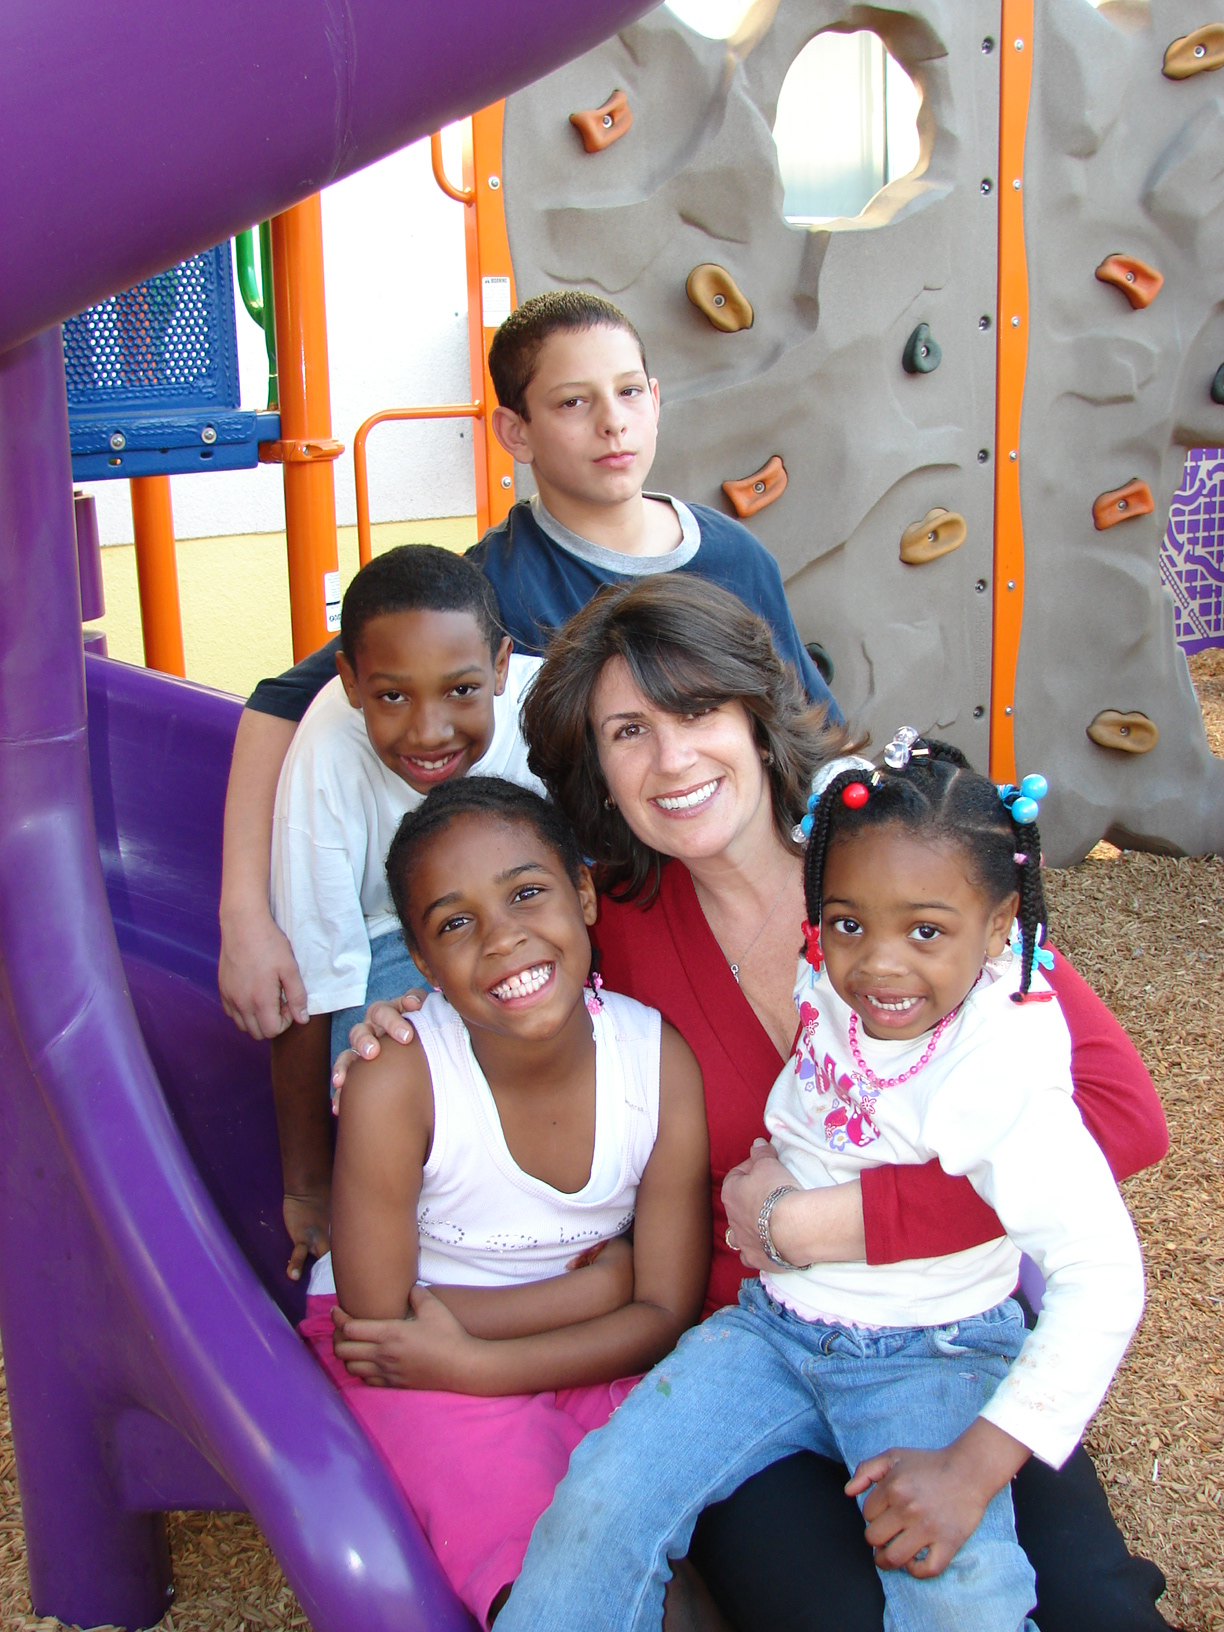 Stephanie_with_Children_on_Slide.jpg